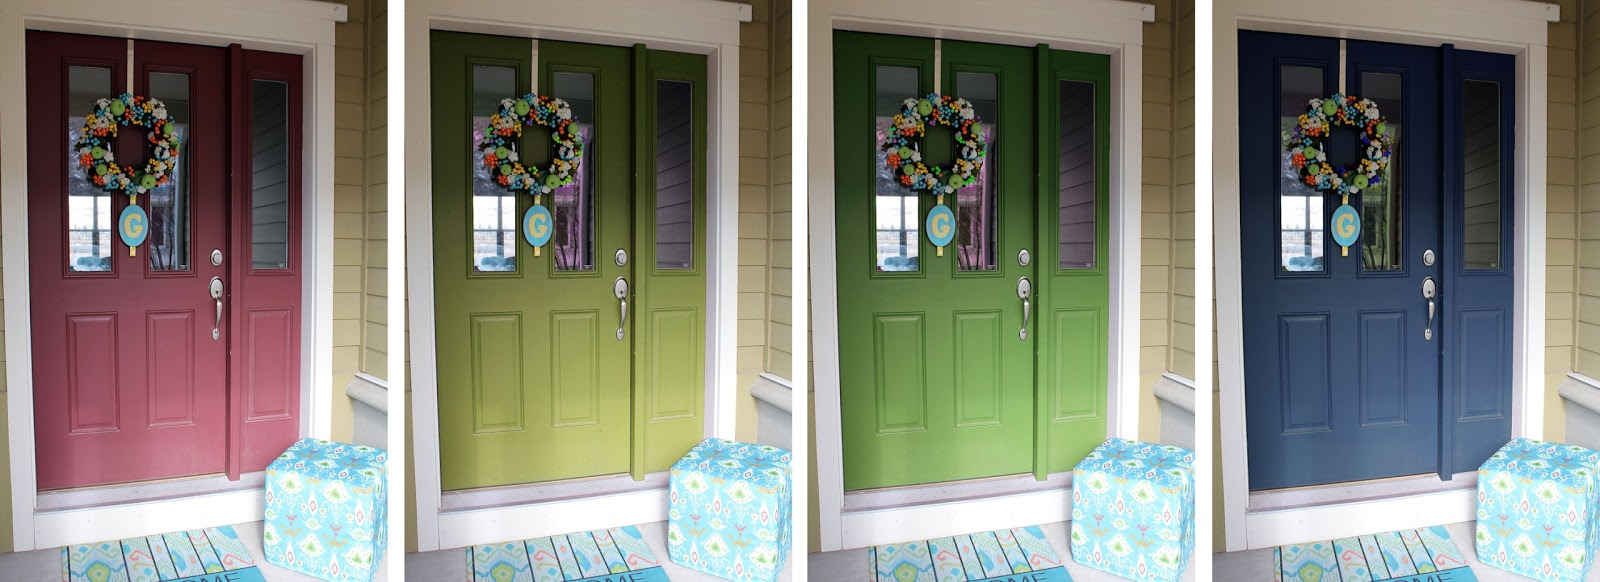 Worth pinning changing the color of the front door Gray front door meaning